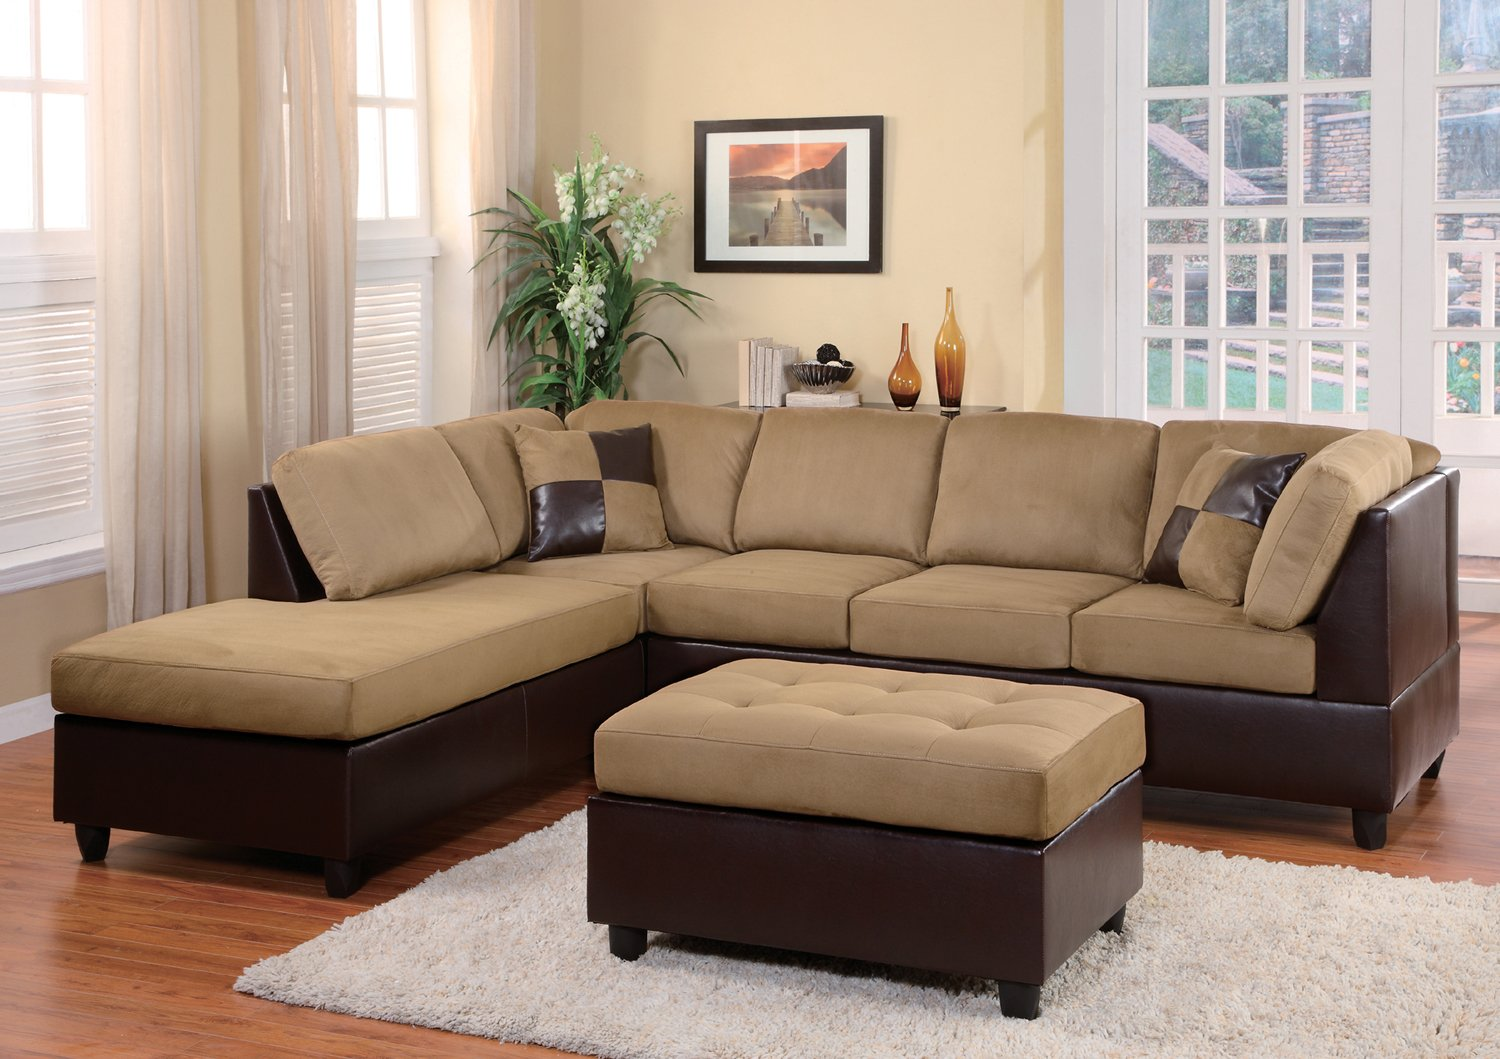 Amazon.com Homelegance 9909BR Comfort Living Sectional Collection with 2 Pillows Brown Rhino Microfiber and Dark Brown Faux Leather Kitchen u0026 Dining : 2 piece sectional sofa with chaise - Sectionals, Sofas & Couches